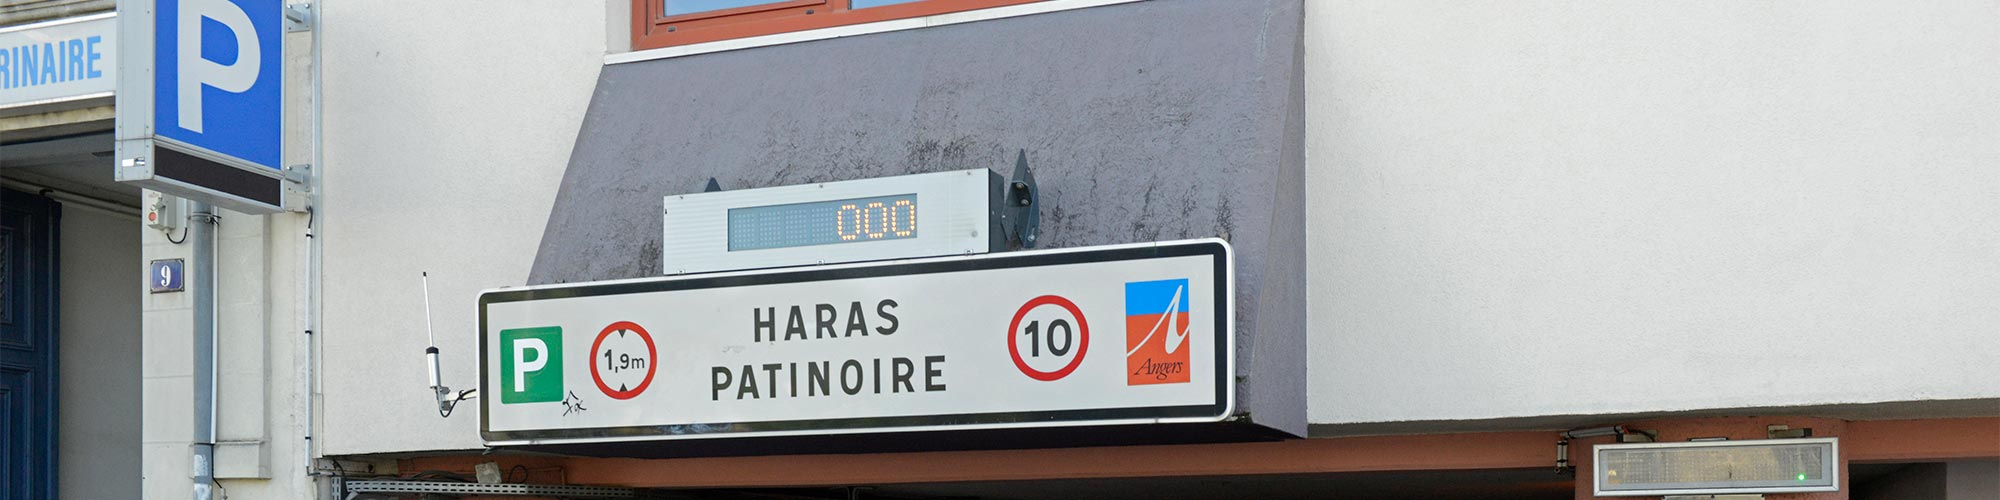 parking-haras-patinoire